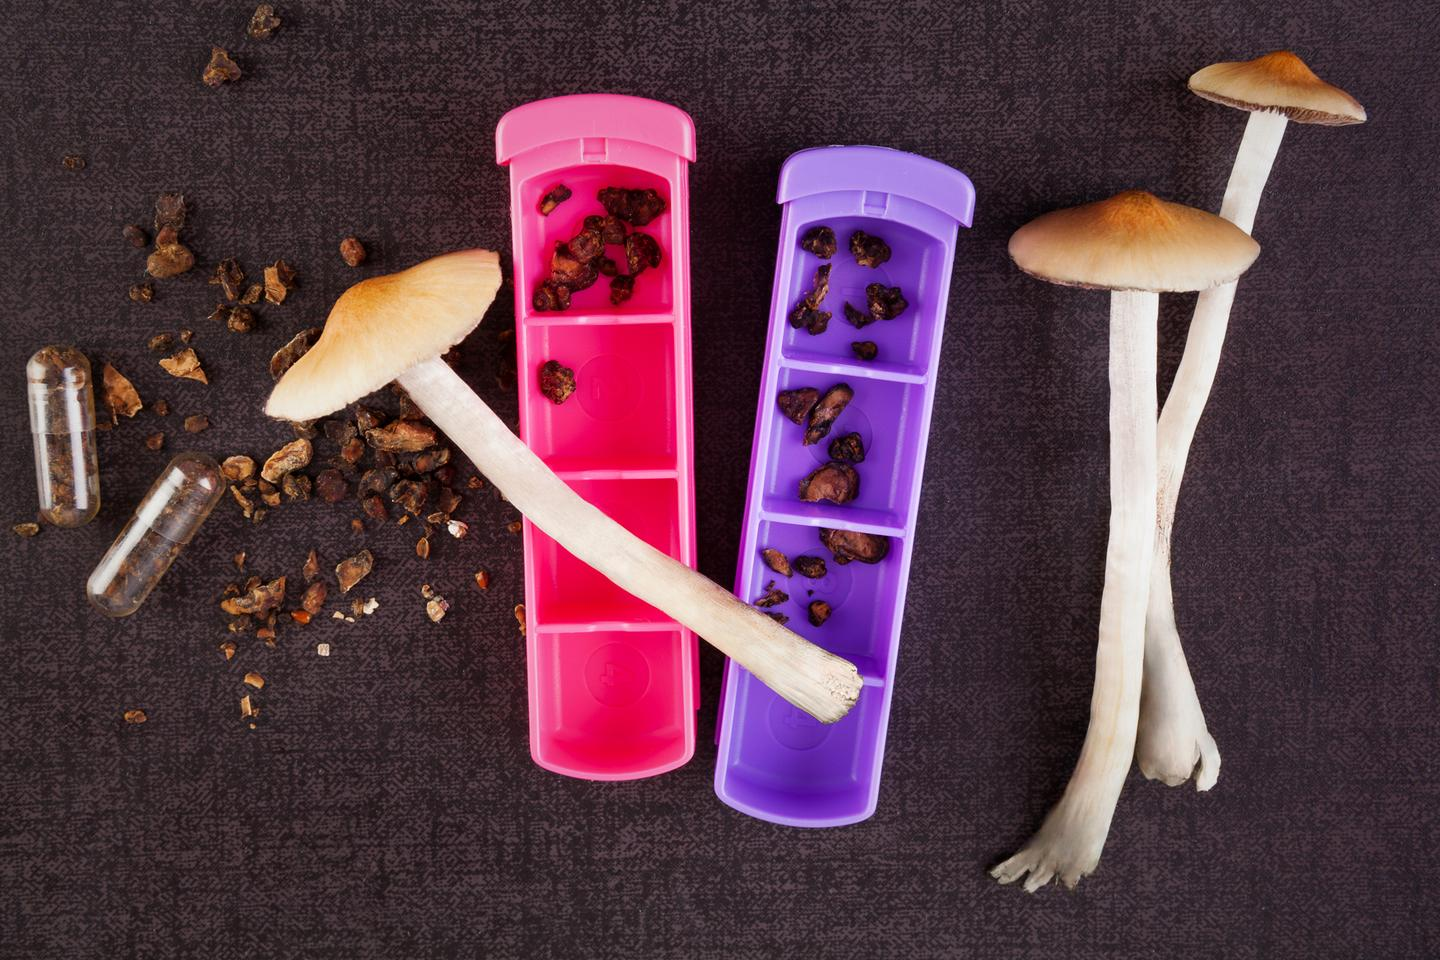 The latest research into psilocybin therapy as a treatment for depression has yielded promising results